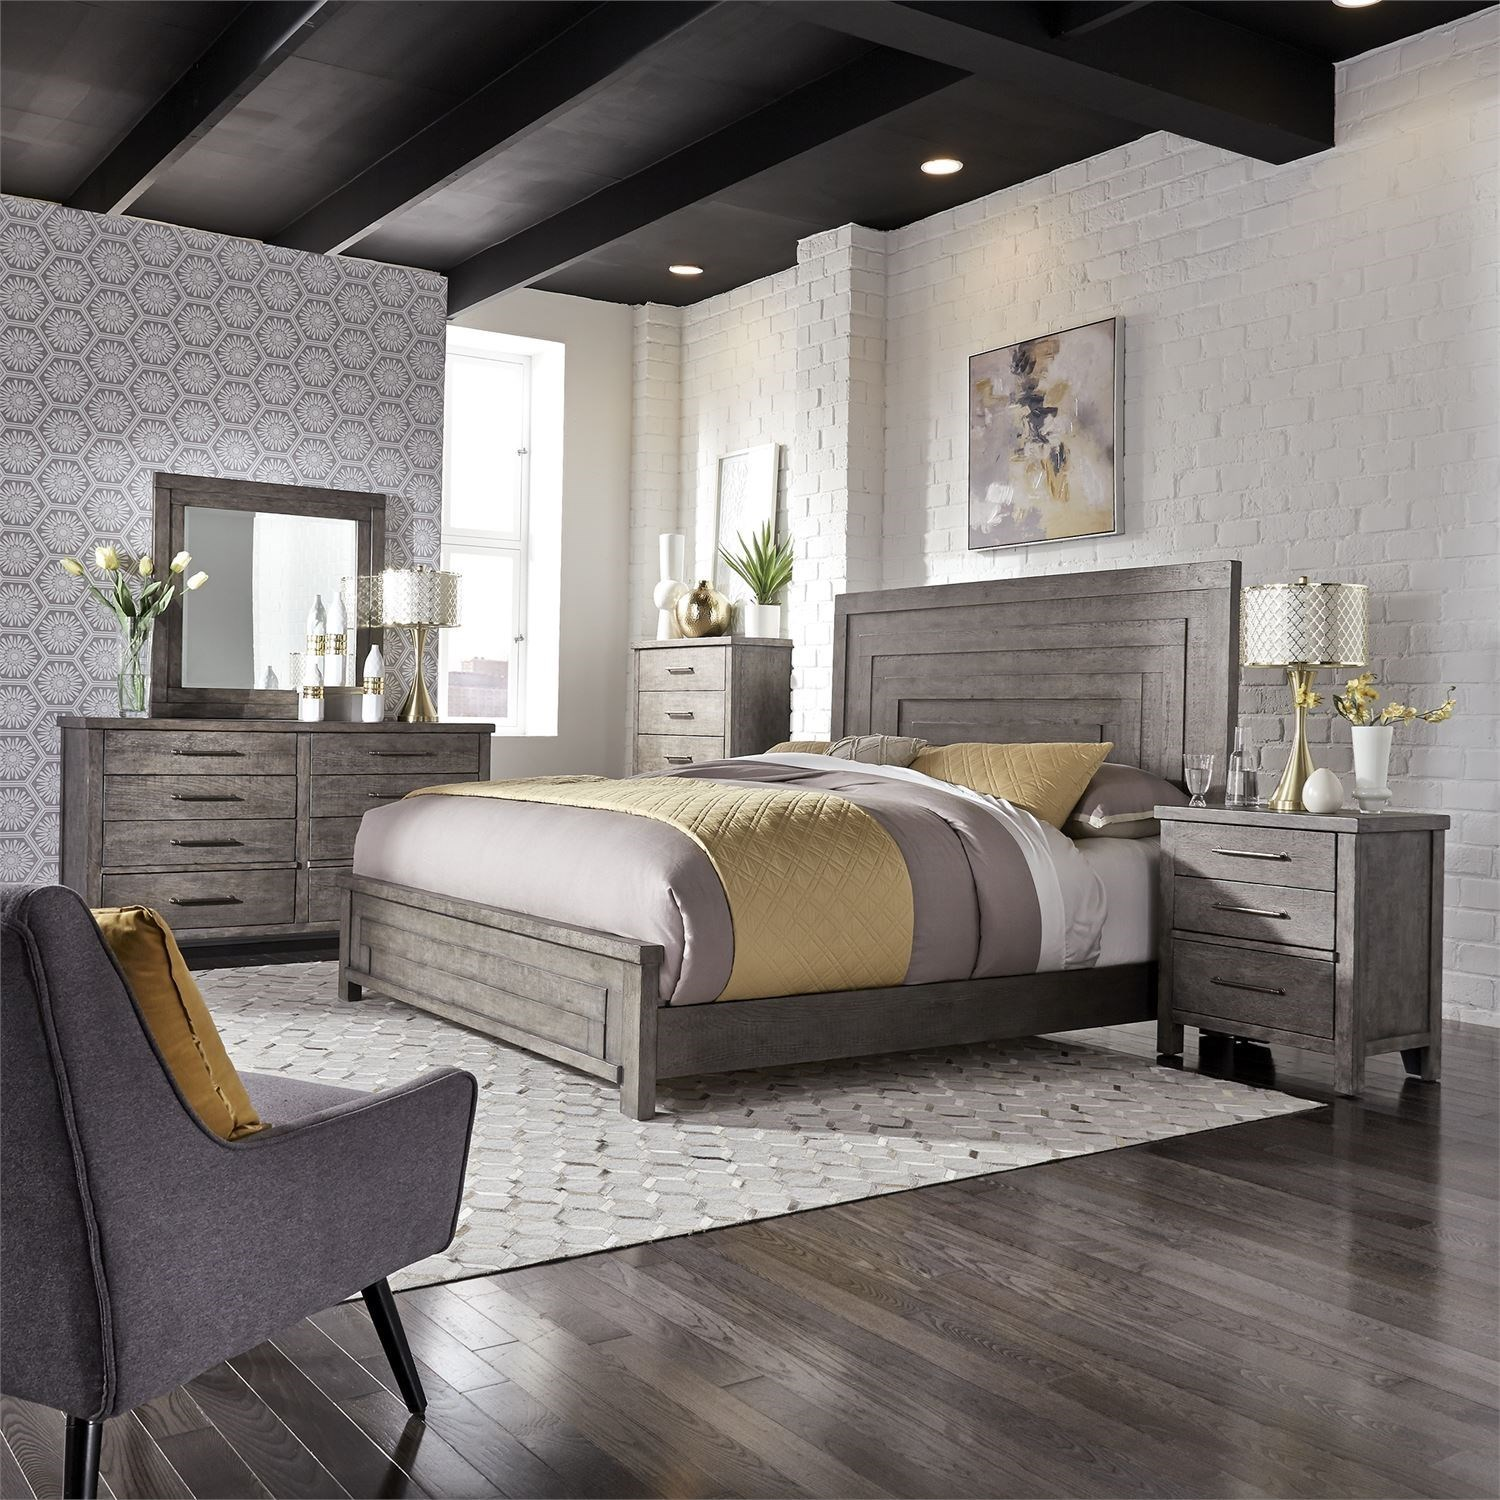 Modern Farmhouse King Bedroom Group by Libby at Walker's Furniture